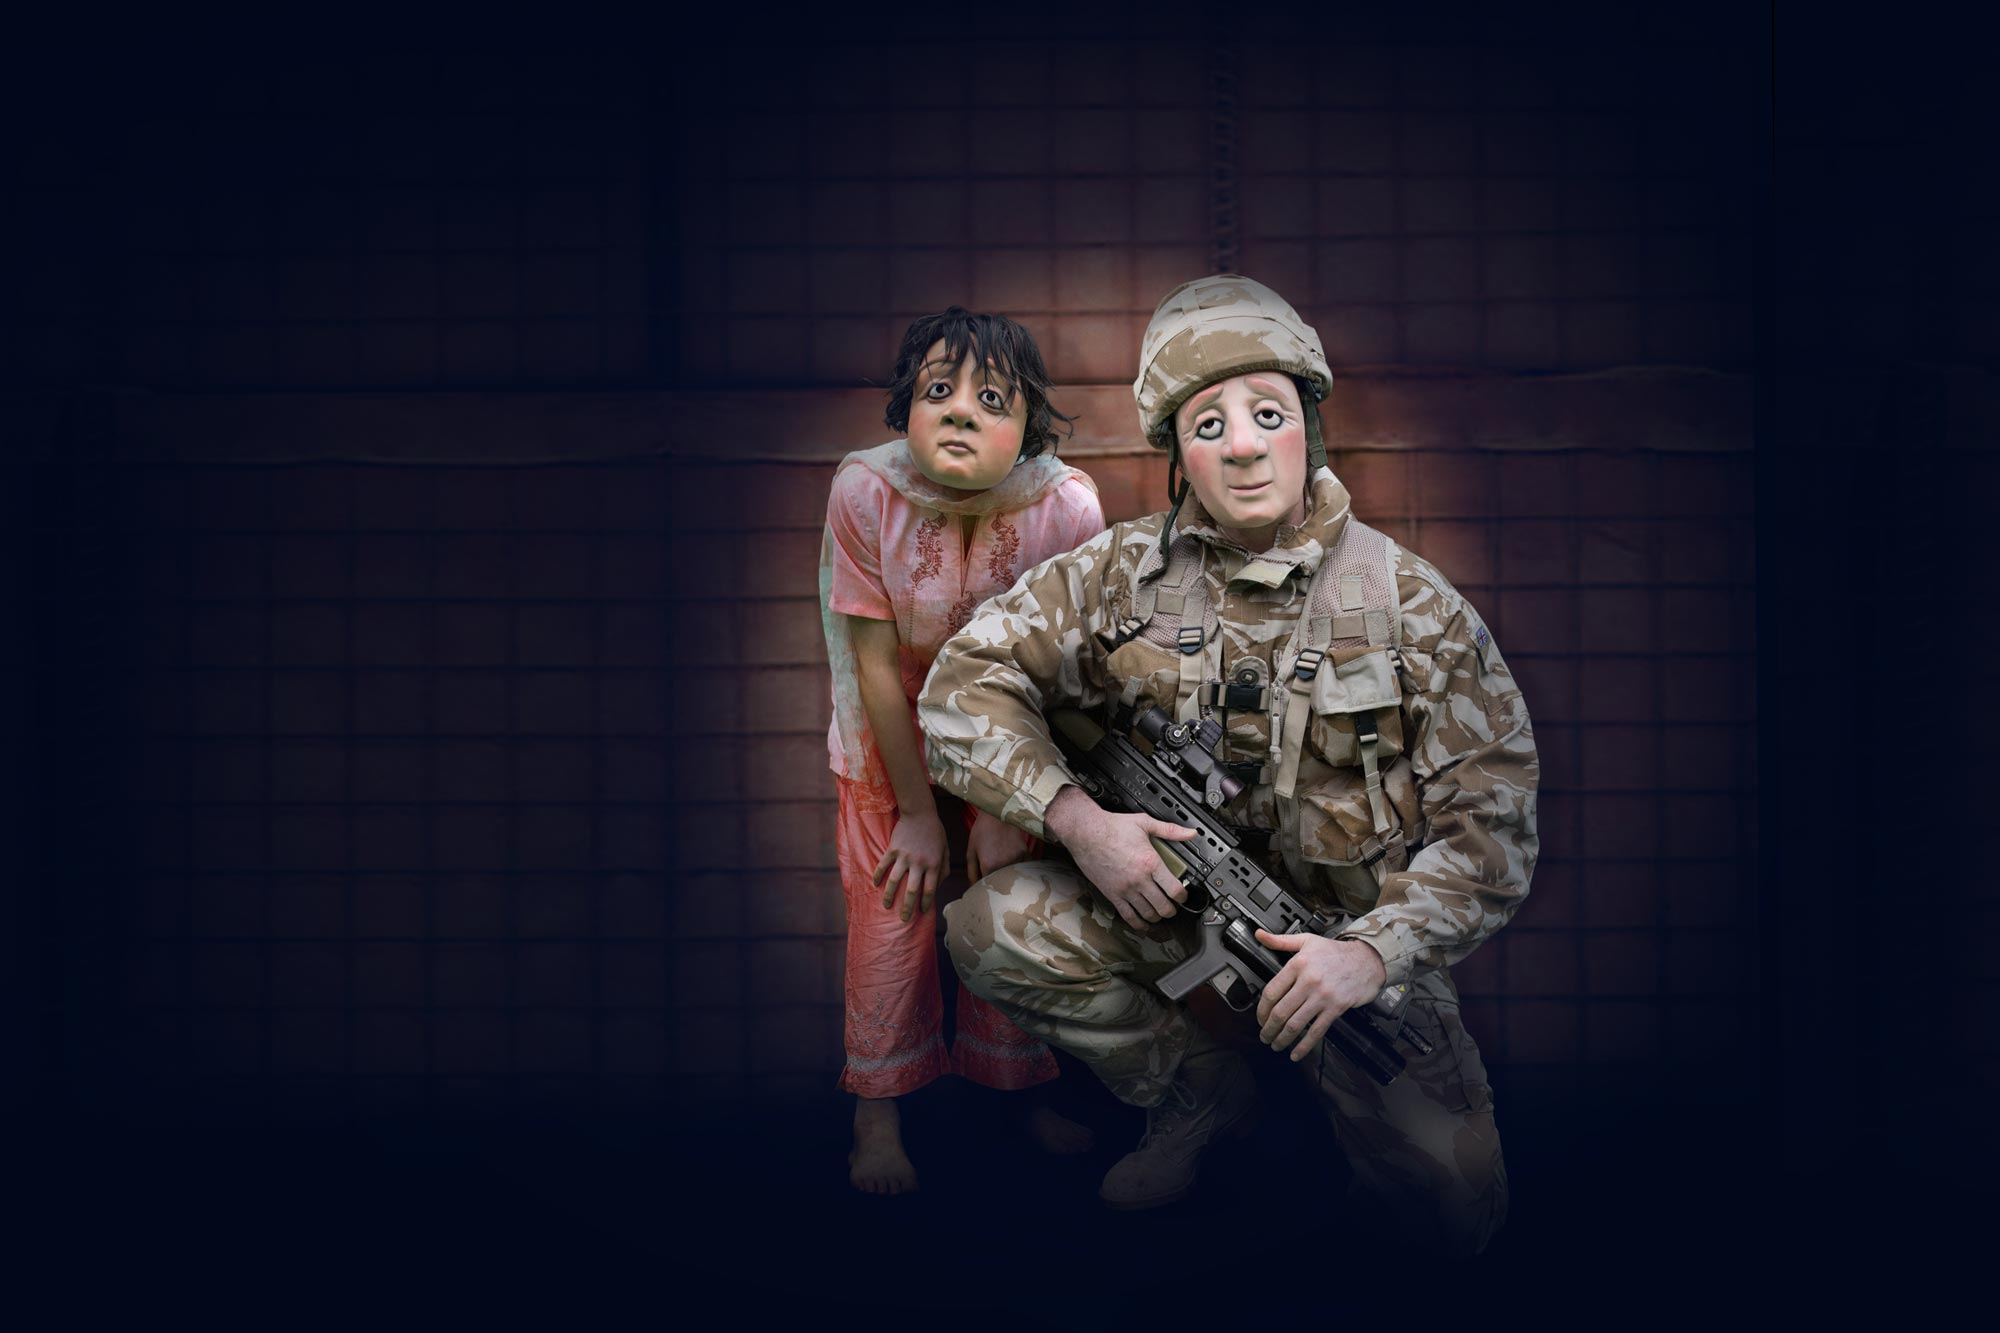 Soldier and afghan child together